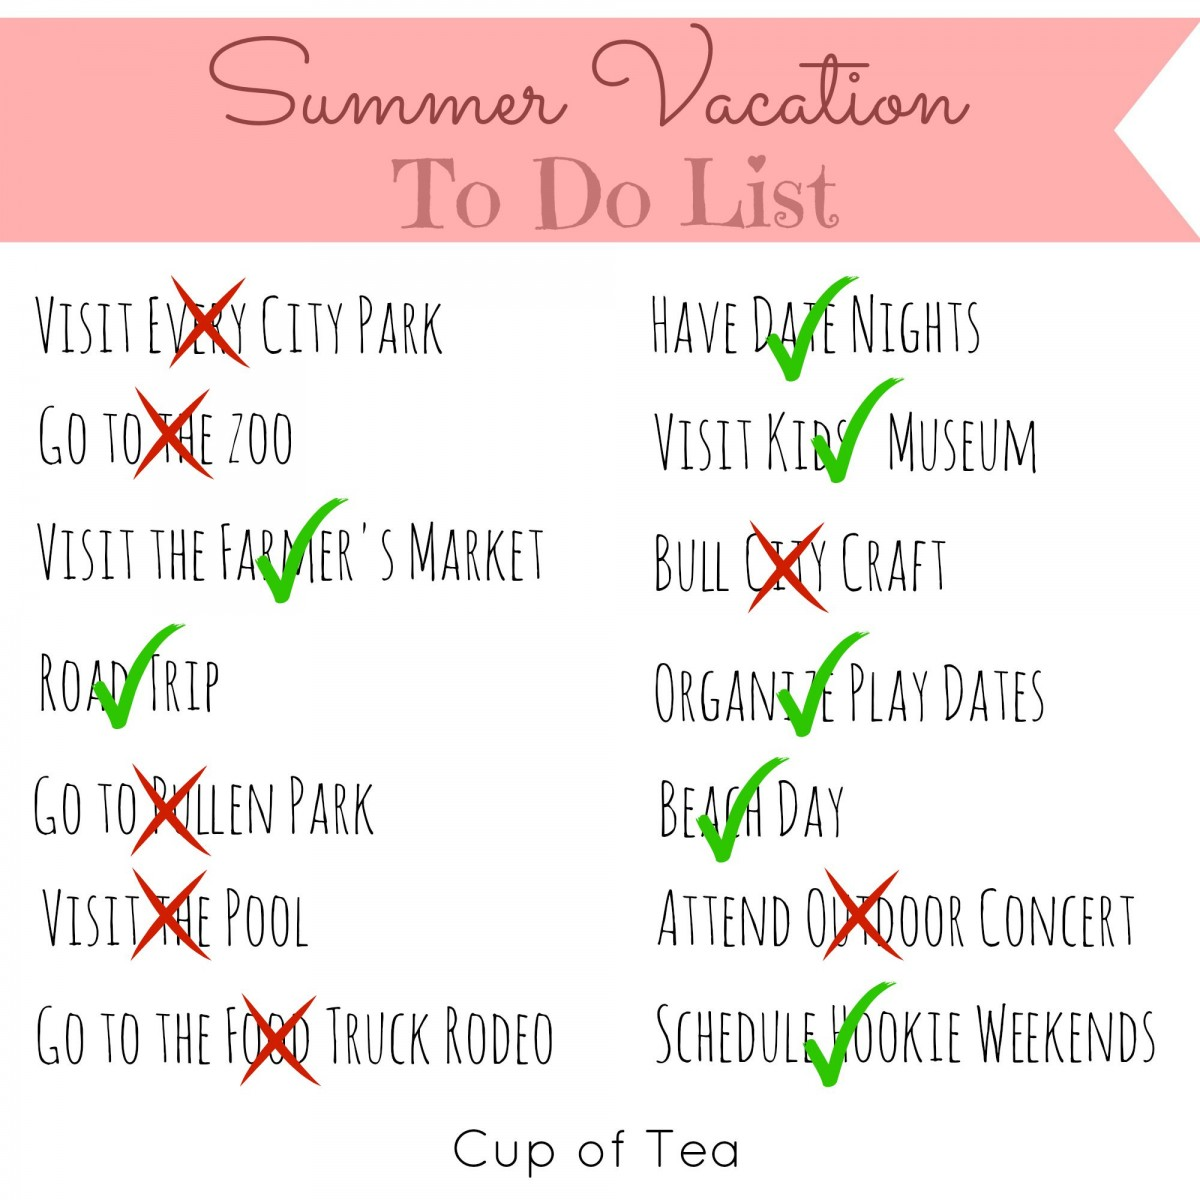 vacation to do lists